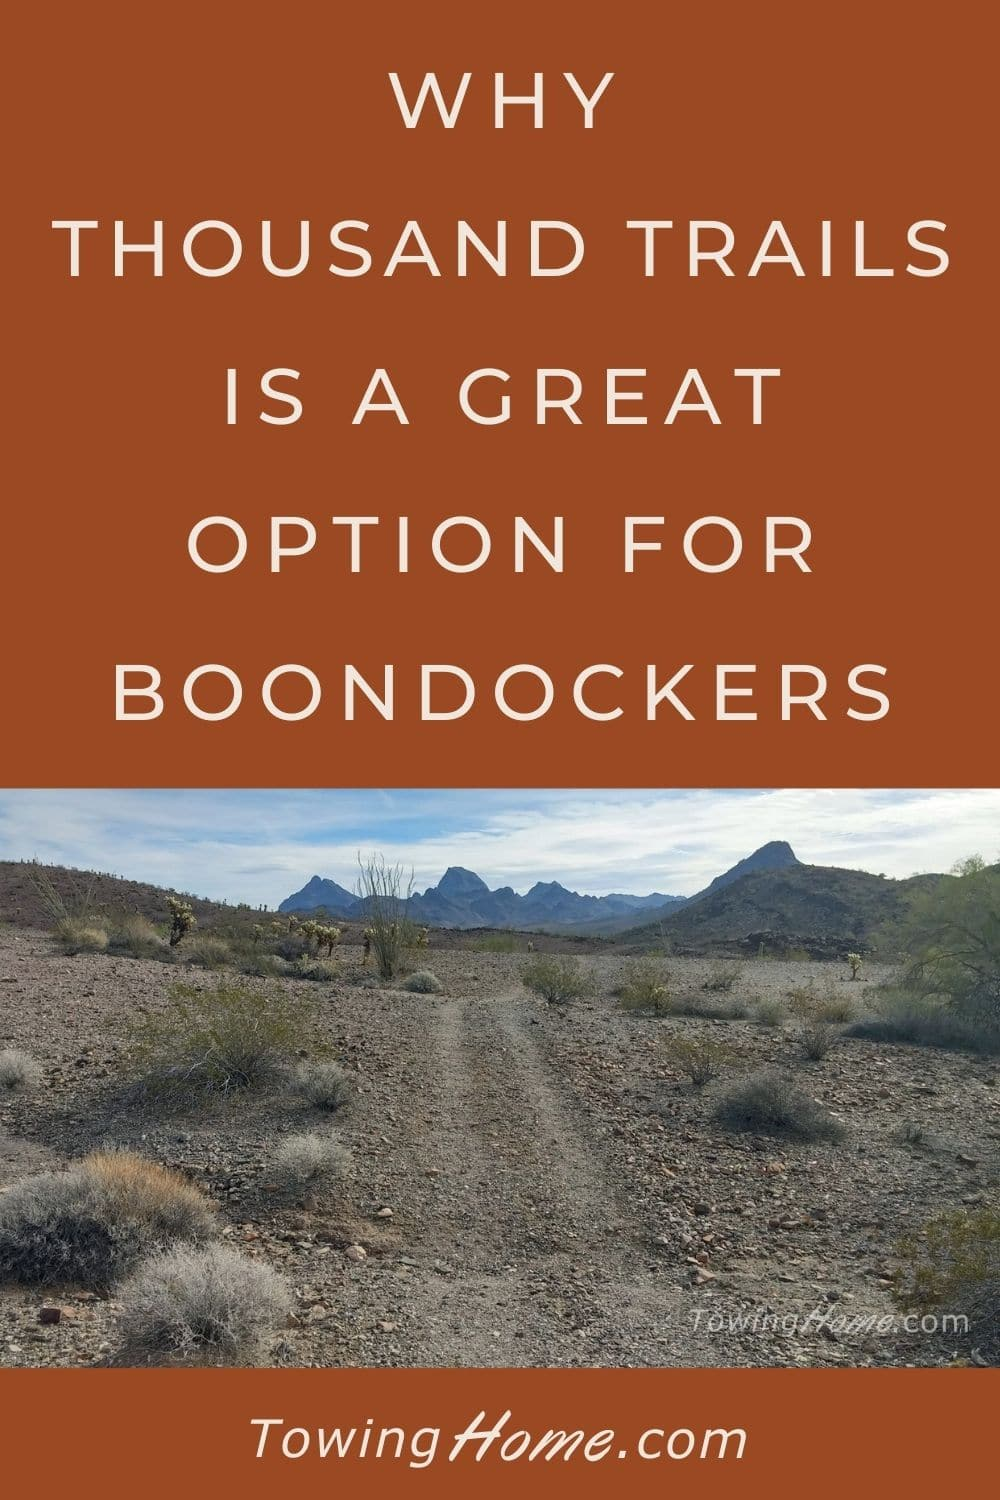 Why Thousand Trails Is a Great Option for Boondockers!